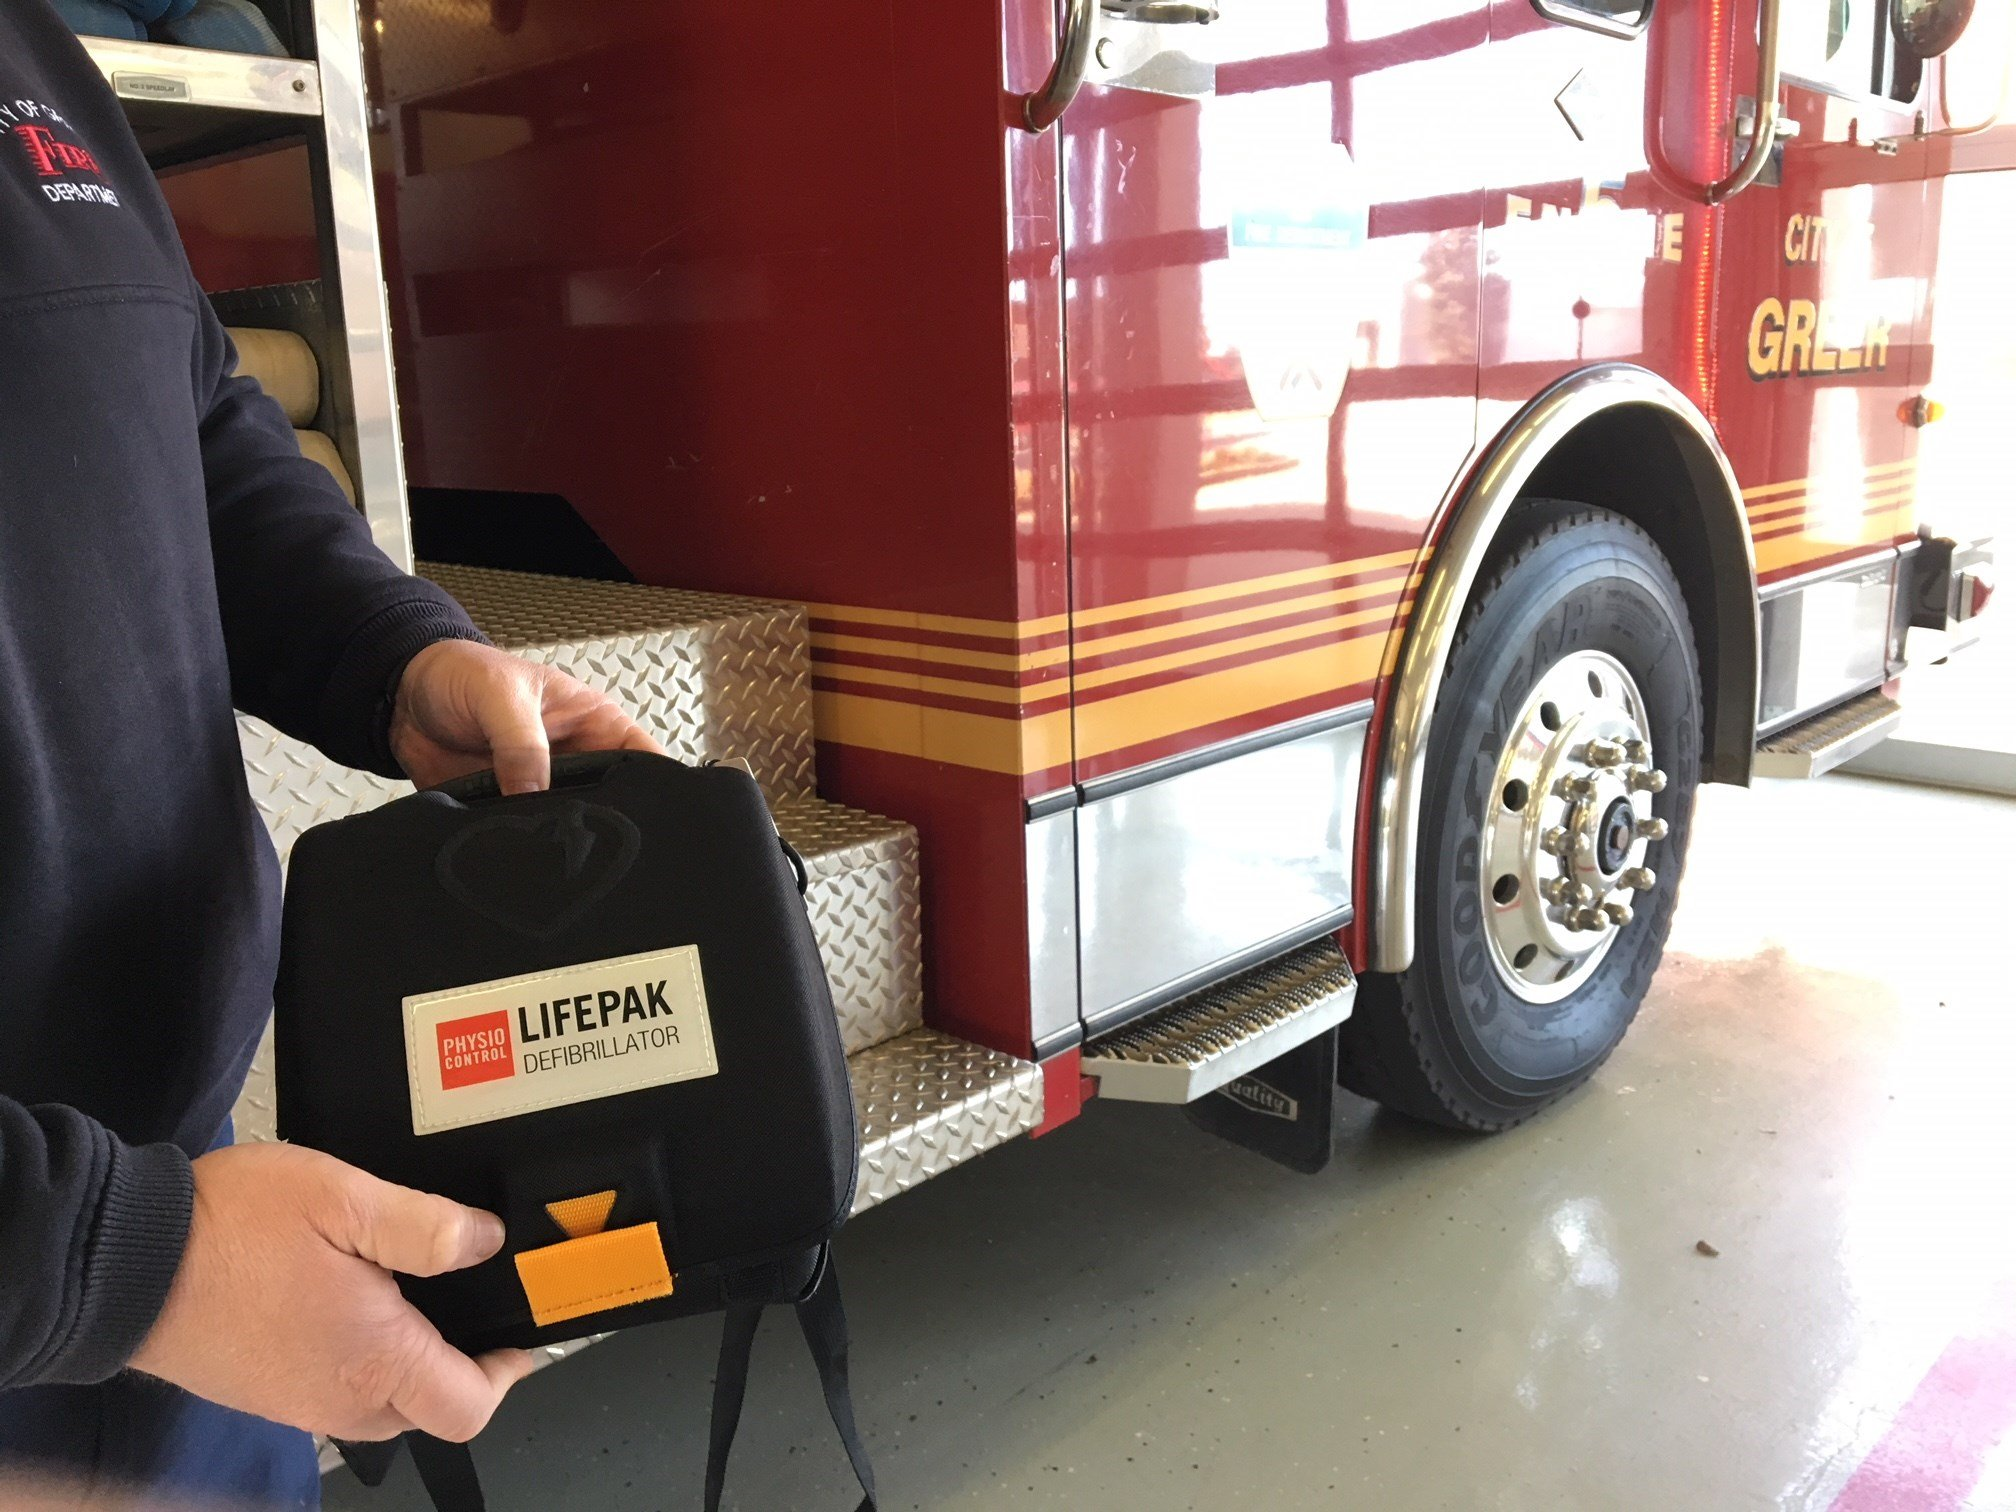 AED kit at Greer's Fire Department (FOX Carolina: 1/312018).